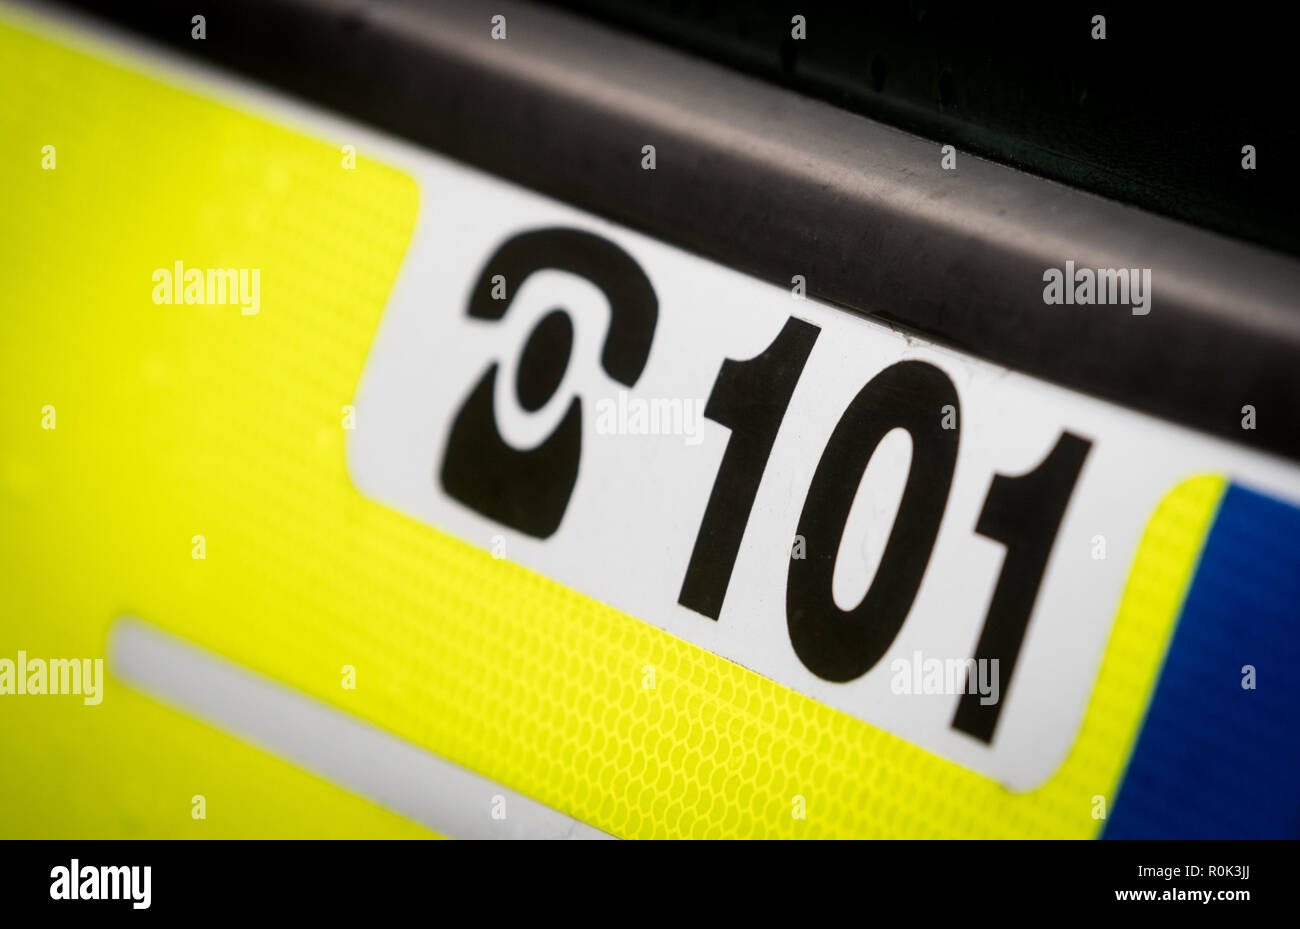 Police 101 non emergency phone number on the side of a police car Stock Photo